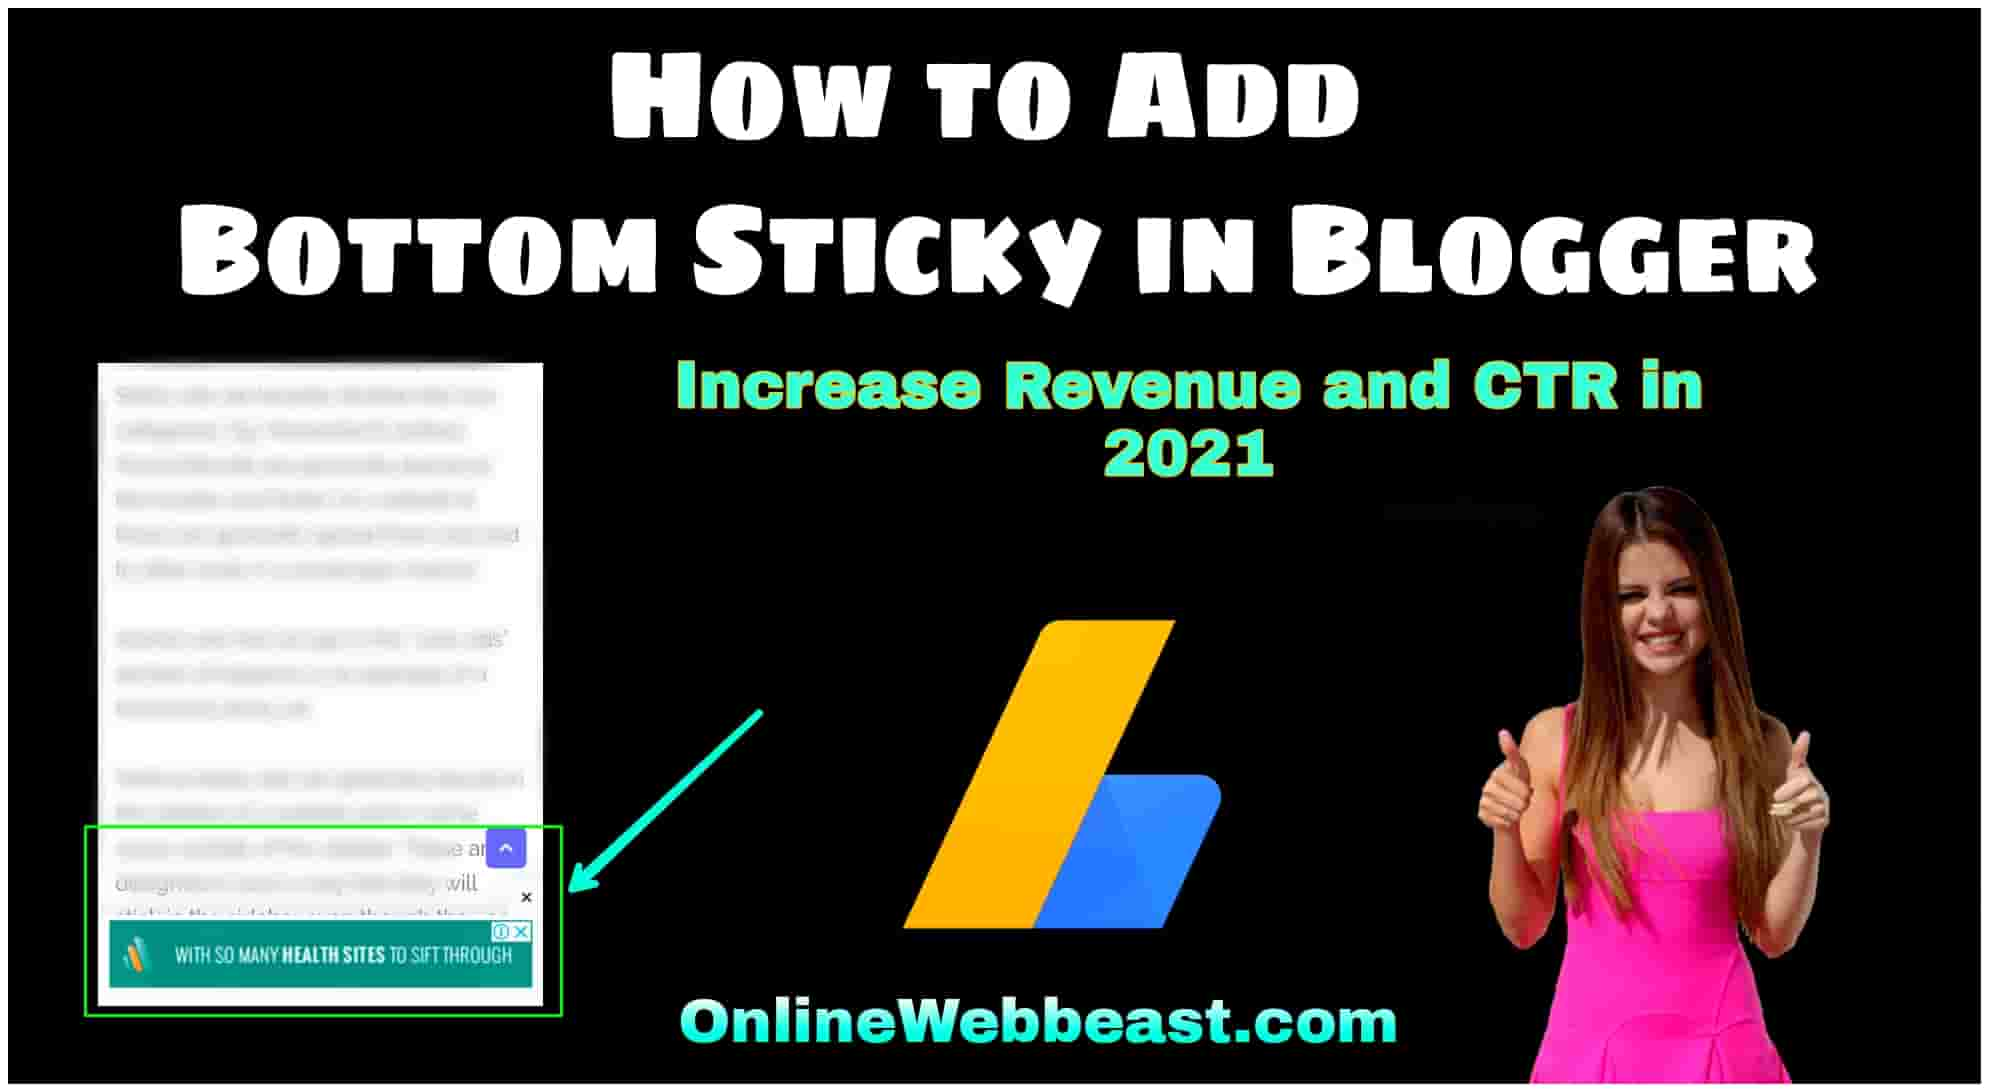 How to Add Responsive Bottom Sticky Ads in Blogger